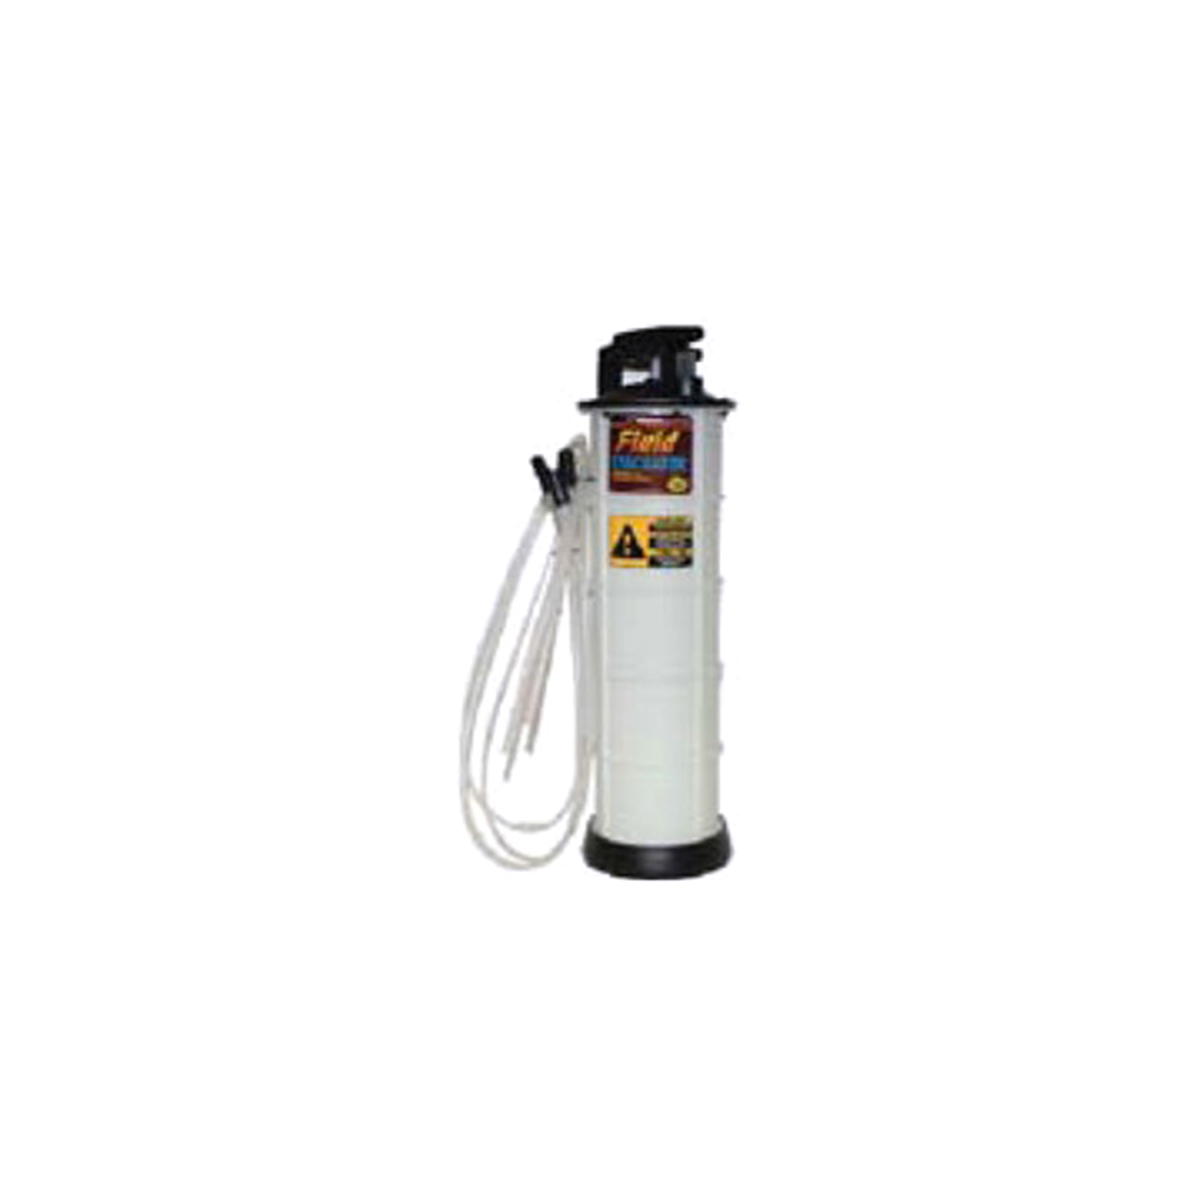 90200 Dixie Chopper Fluid Evacuator Sump Pump